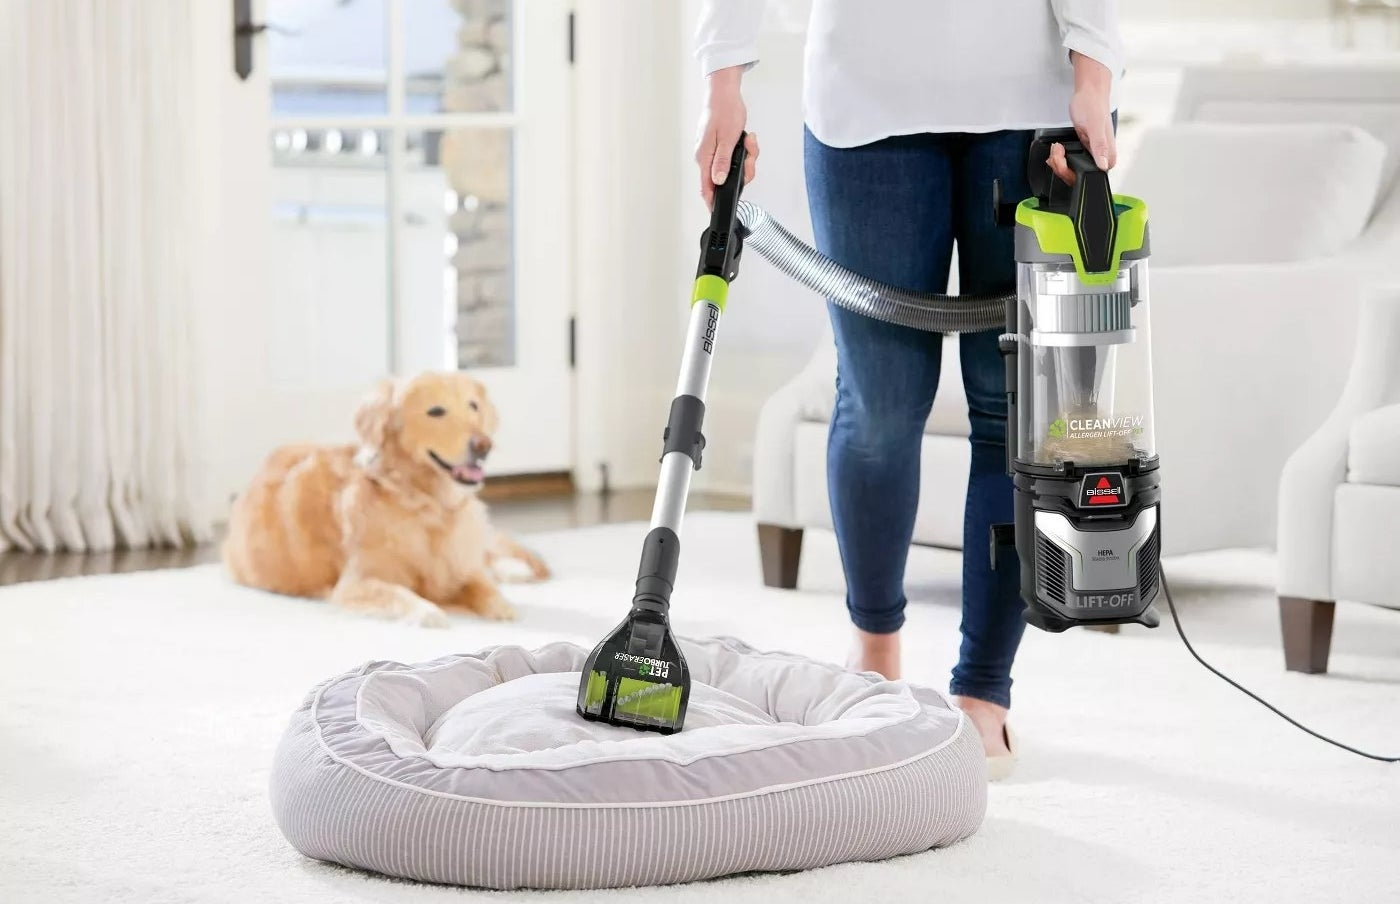 A model using the hose of the lift-off upright vacuum on a pet bed